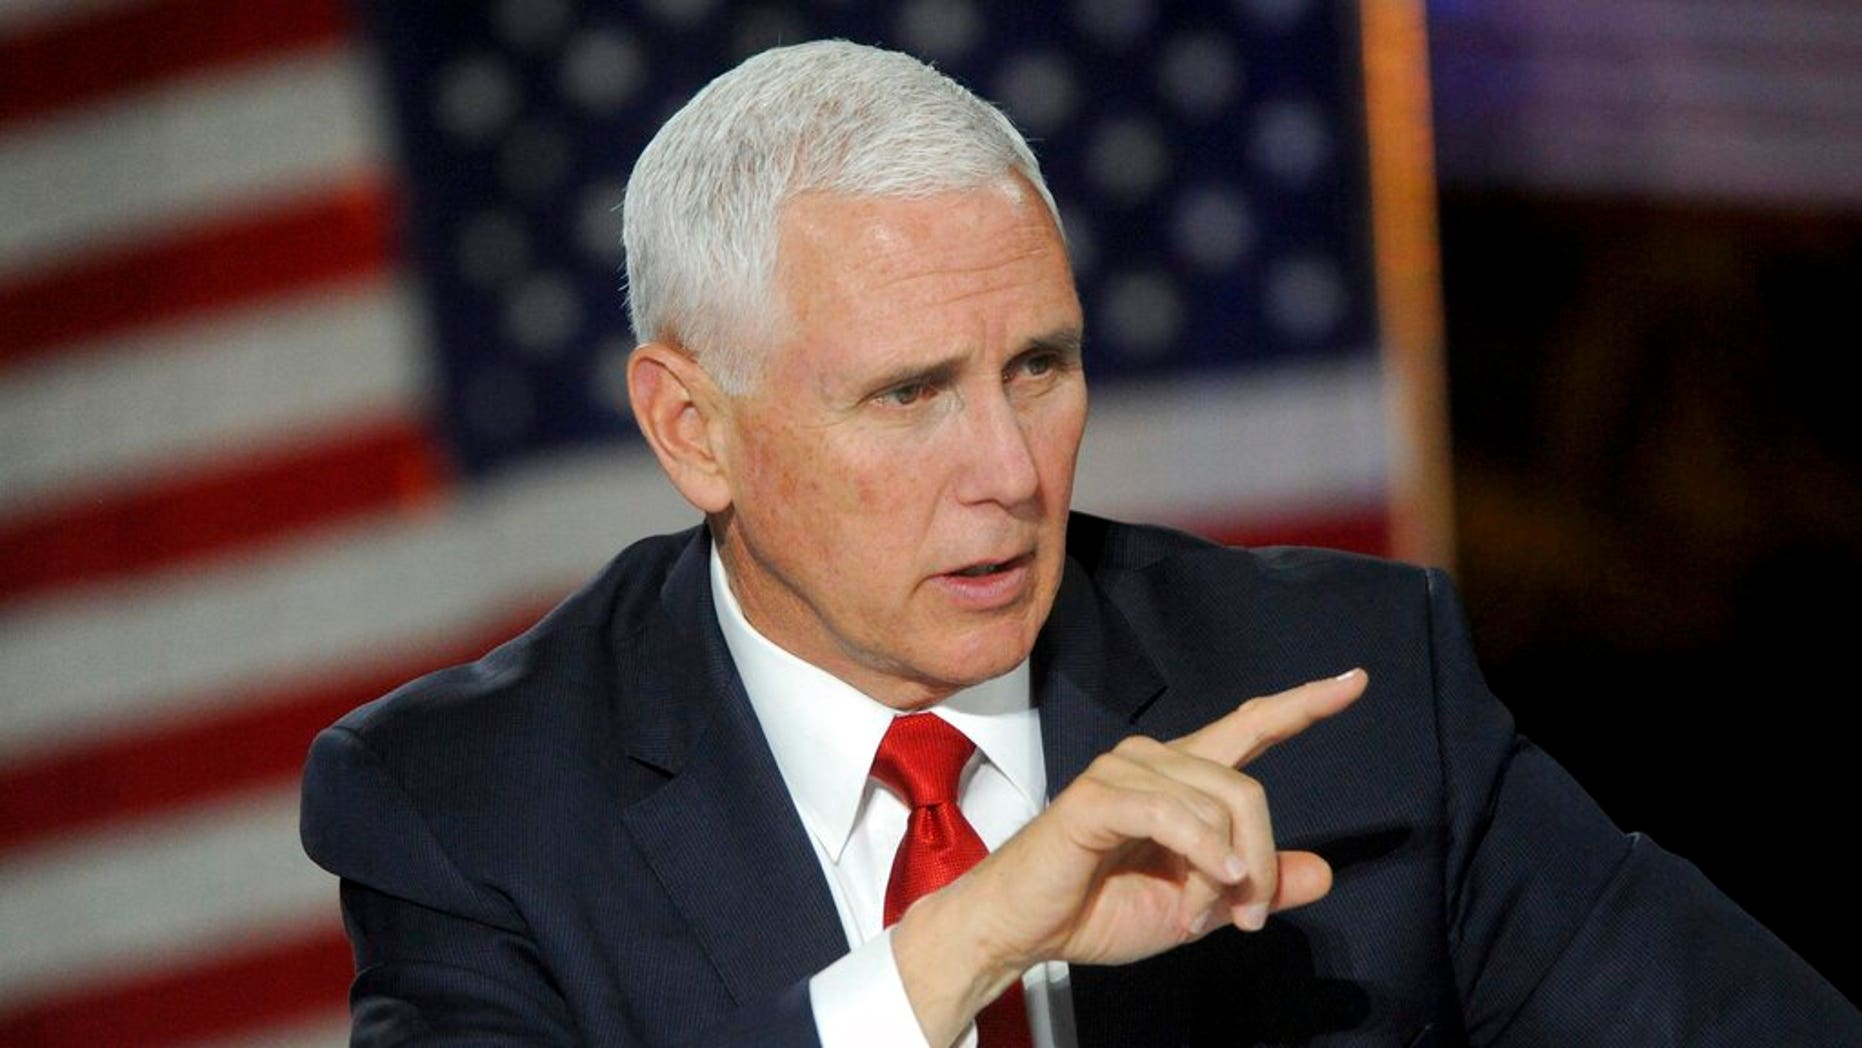 Vice President Mike Pence at the Fifth National Space Council meeting for astronauts on the moon within five years. (Associated Press)